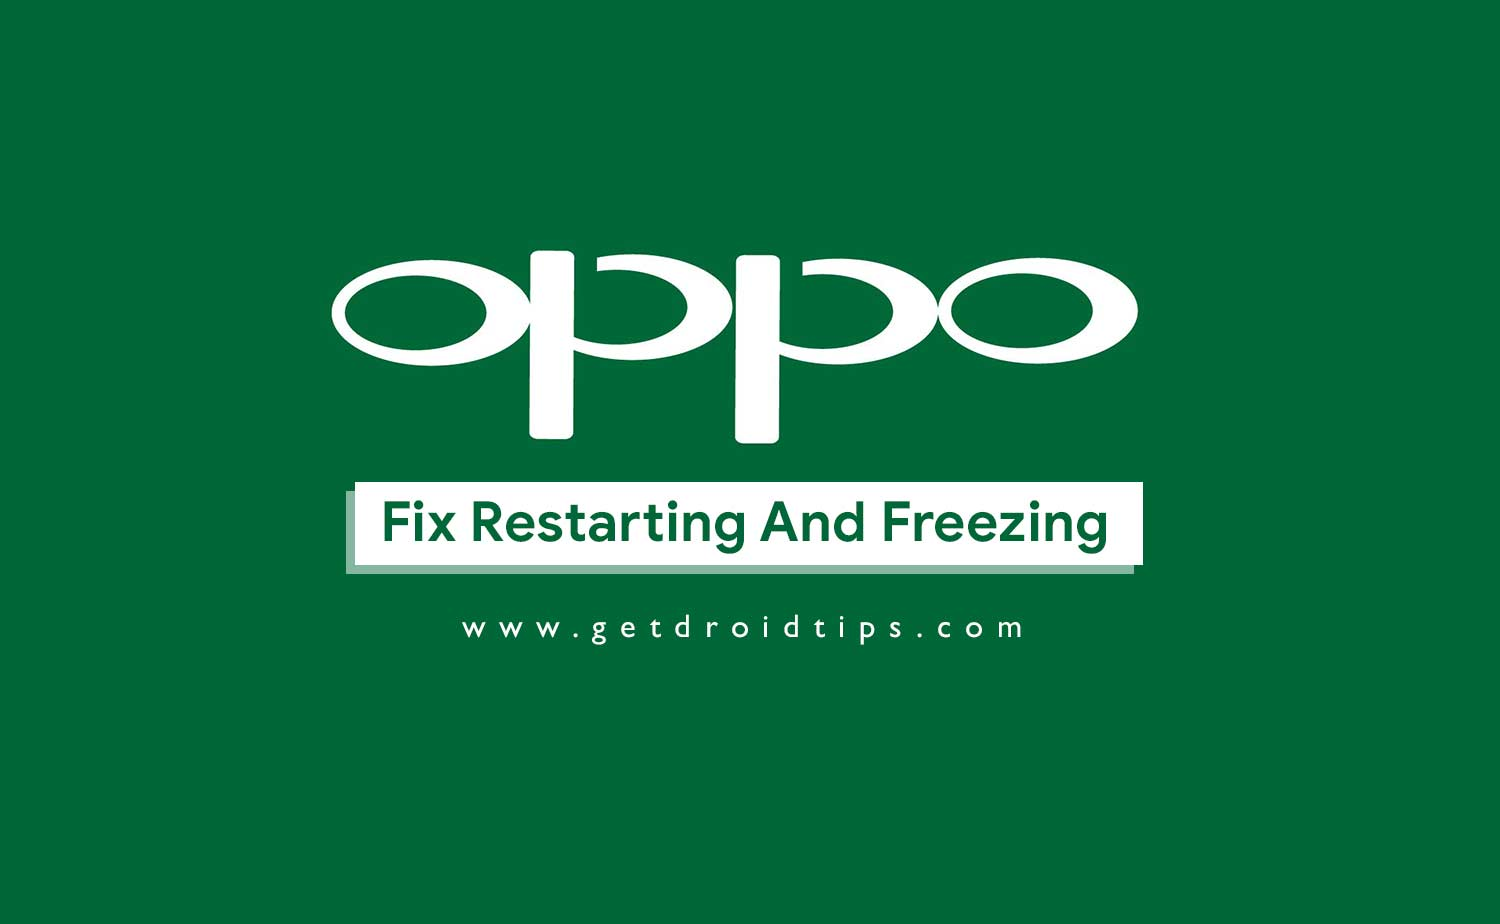 How To Fix OPPO Restarting And Freezing Problem?